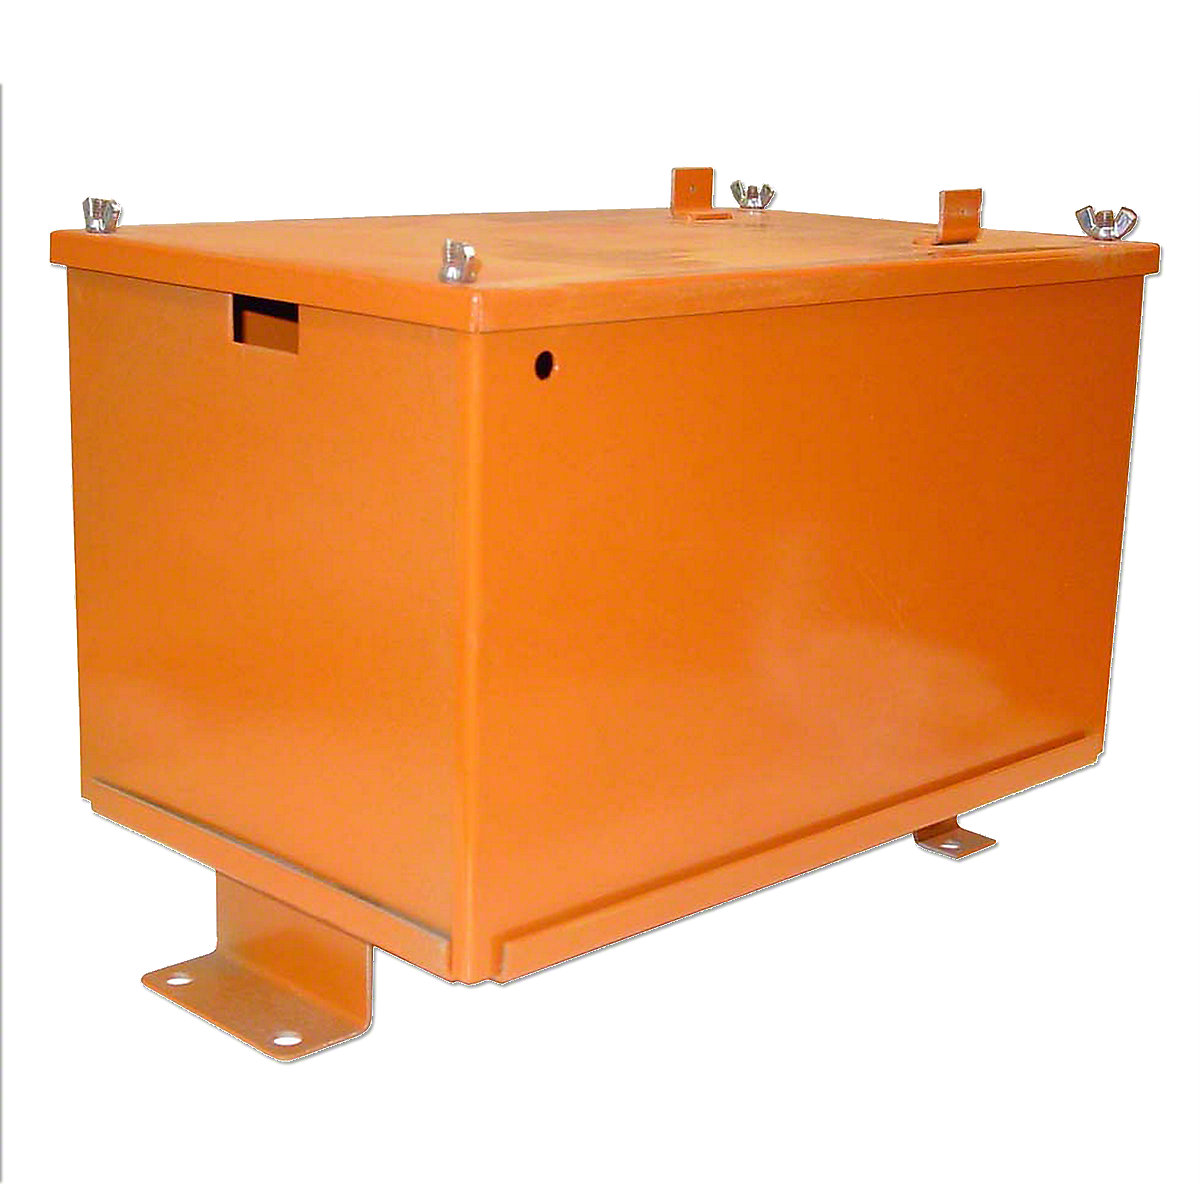 Battery Box With Lid For Allis Chalmers: WD45 Diesel Tractors